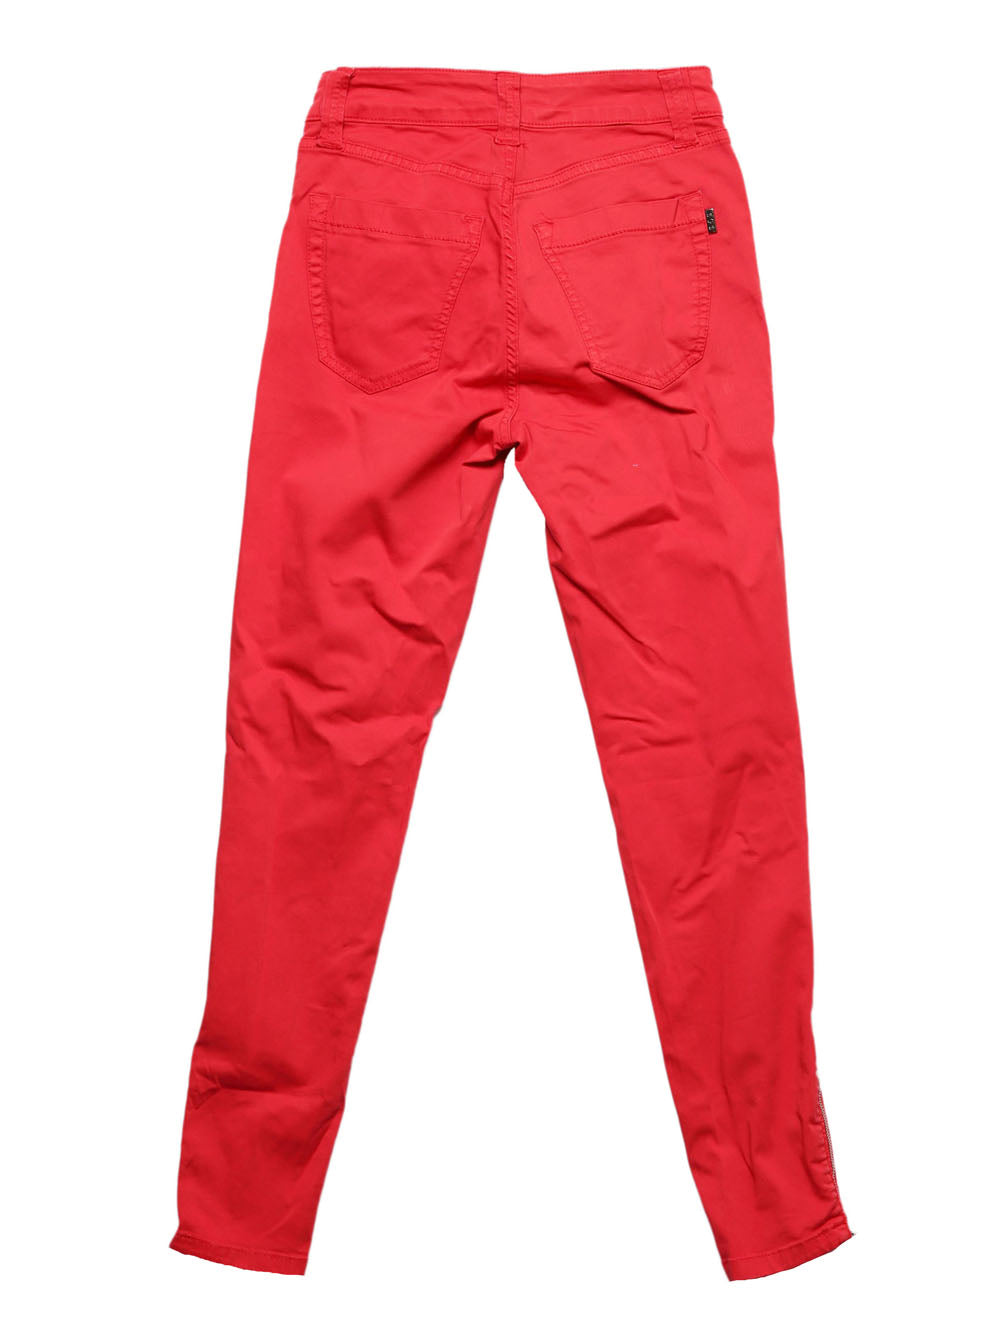 Back photo of Preloved S.O.S BY ORZA STUDIO Red Woman's trousers - size 8/S